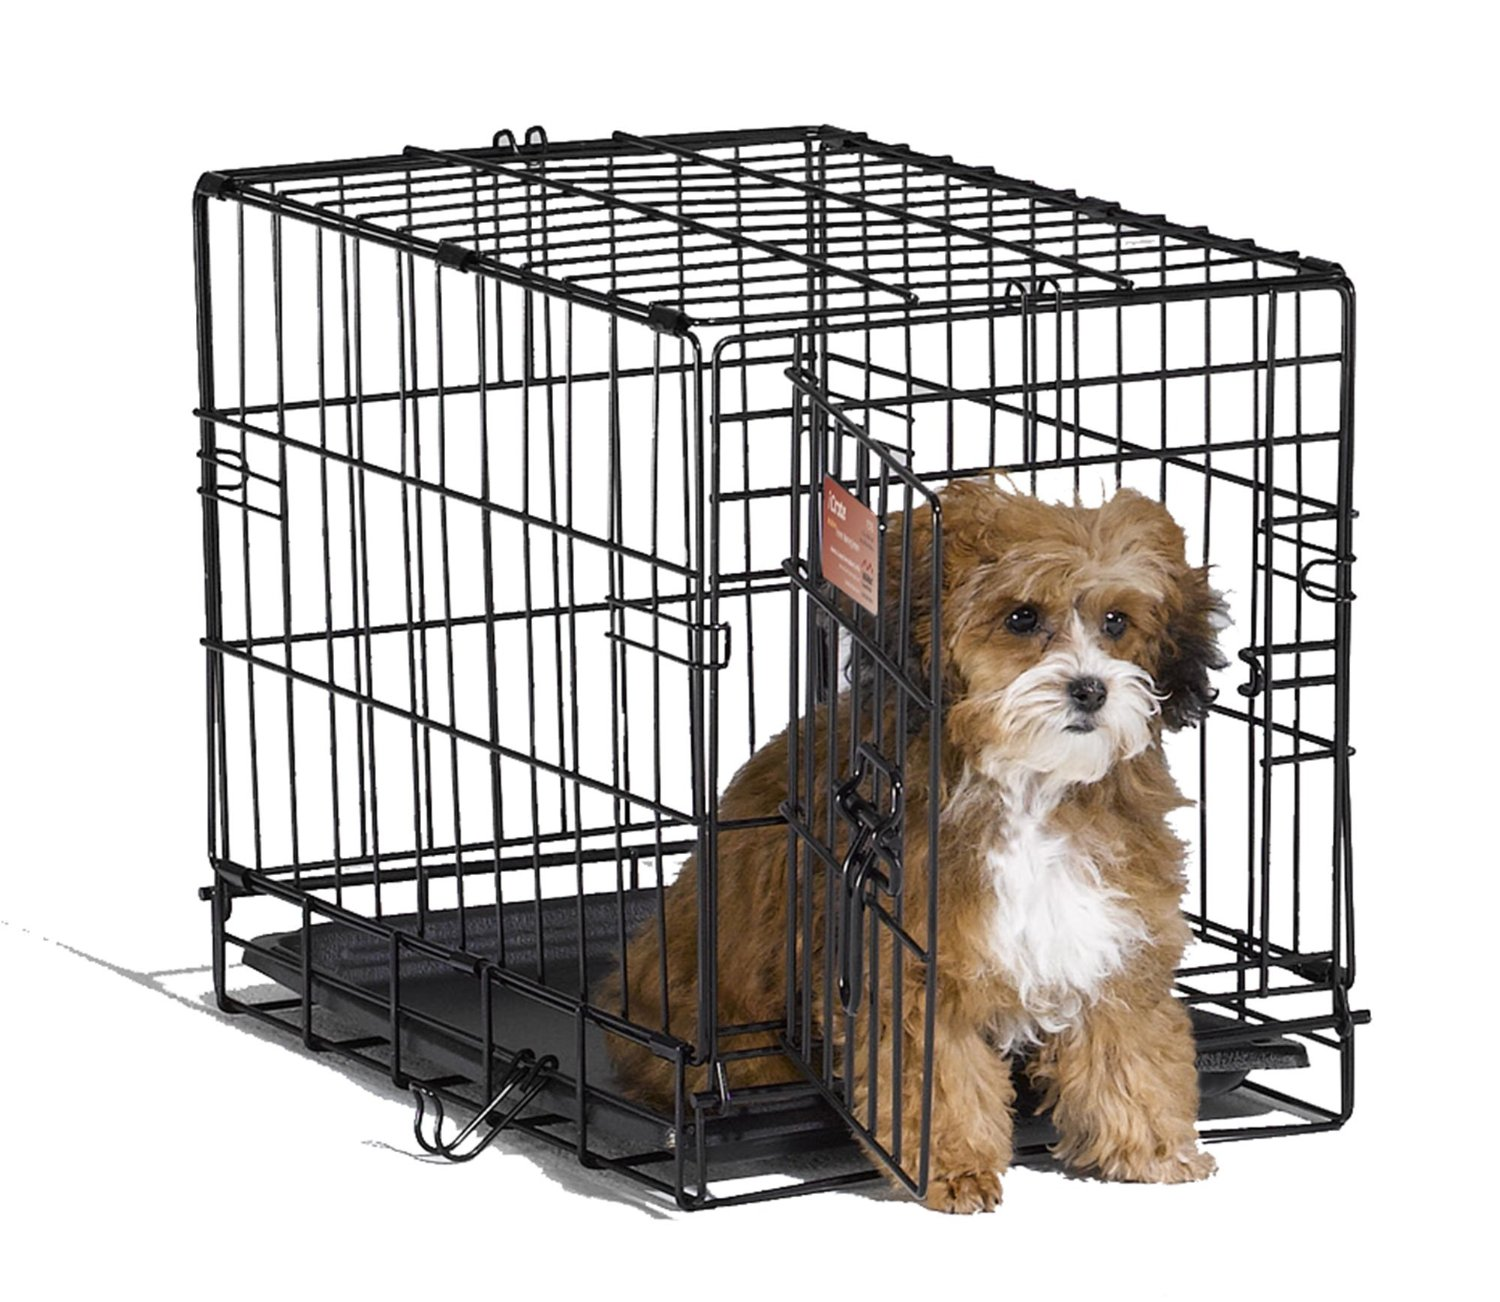 Dog And Its Dog Crate